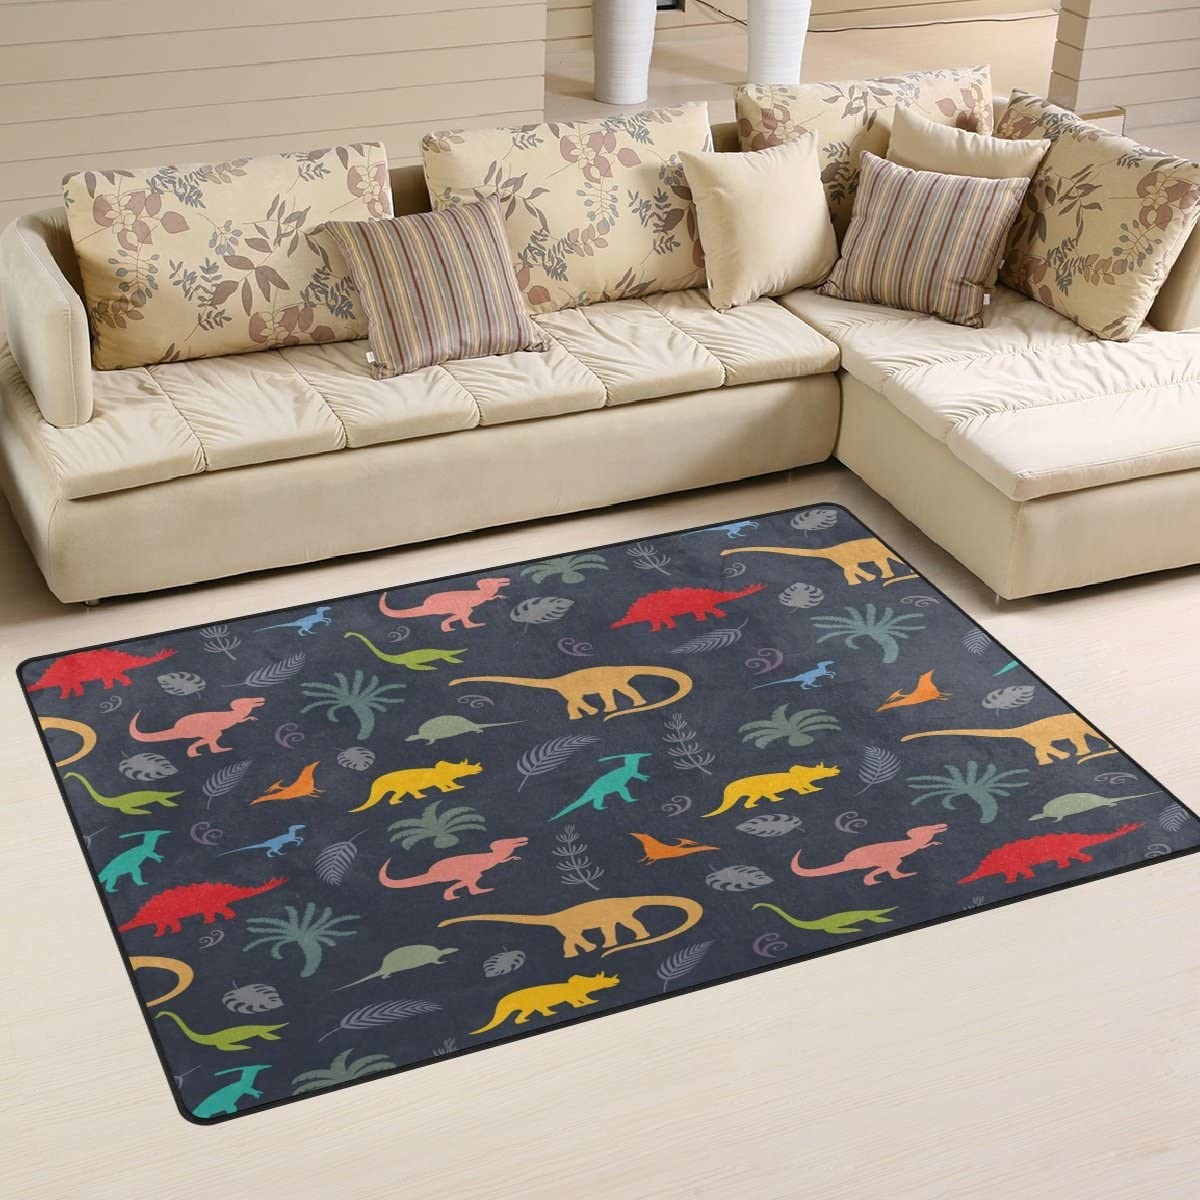 WOZO Forest Palm Tree Dinosaur Area Rug Rugs Non-Slip Floor Mat Doormats Living Dining Room Bedroom Dorm 60 x 39 inches inches Home Decor